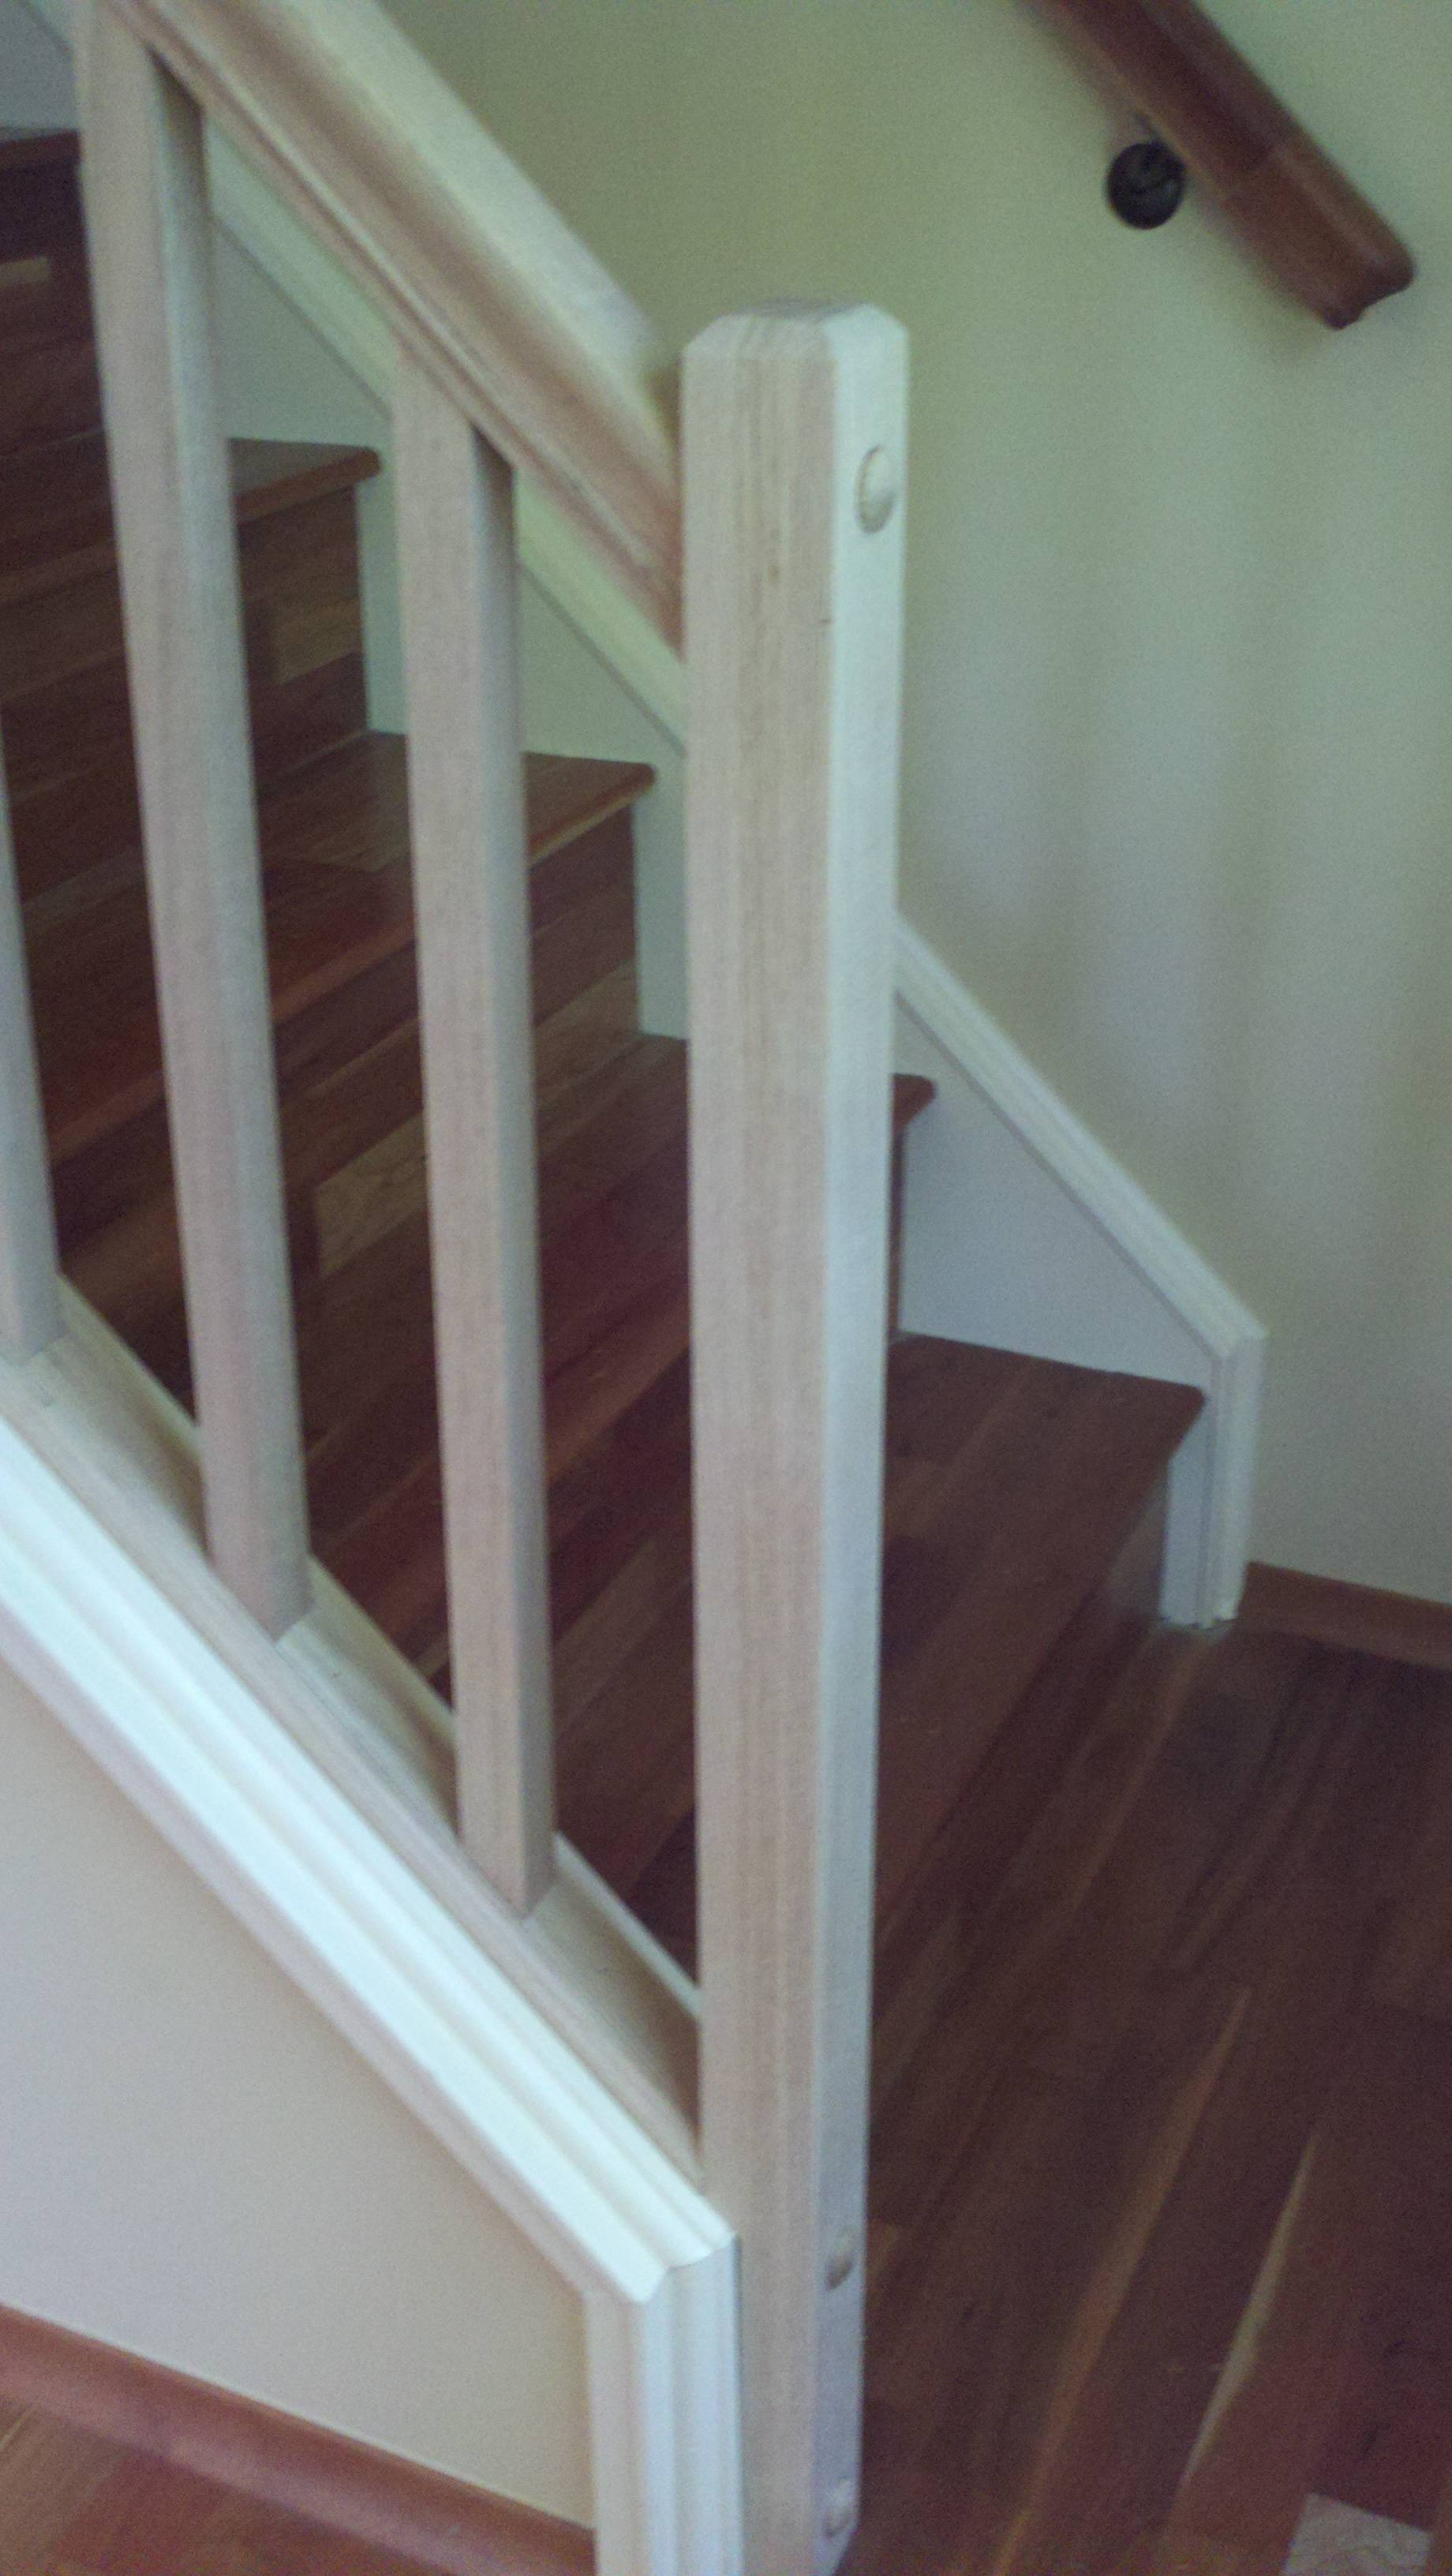 How Can I Set Up A Removable Stair Railing Home Improvement   Top Of Stairs Railing   Redo   Loft   Beautiful Staircase   Solid Wood   Handrail